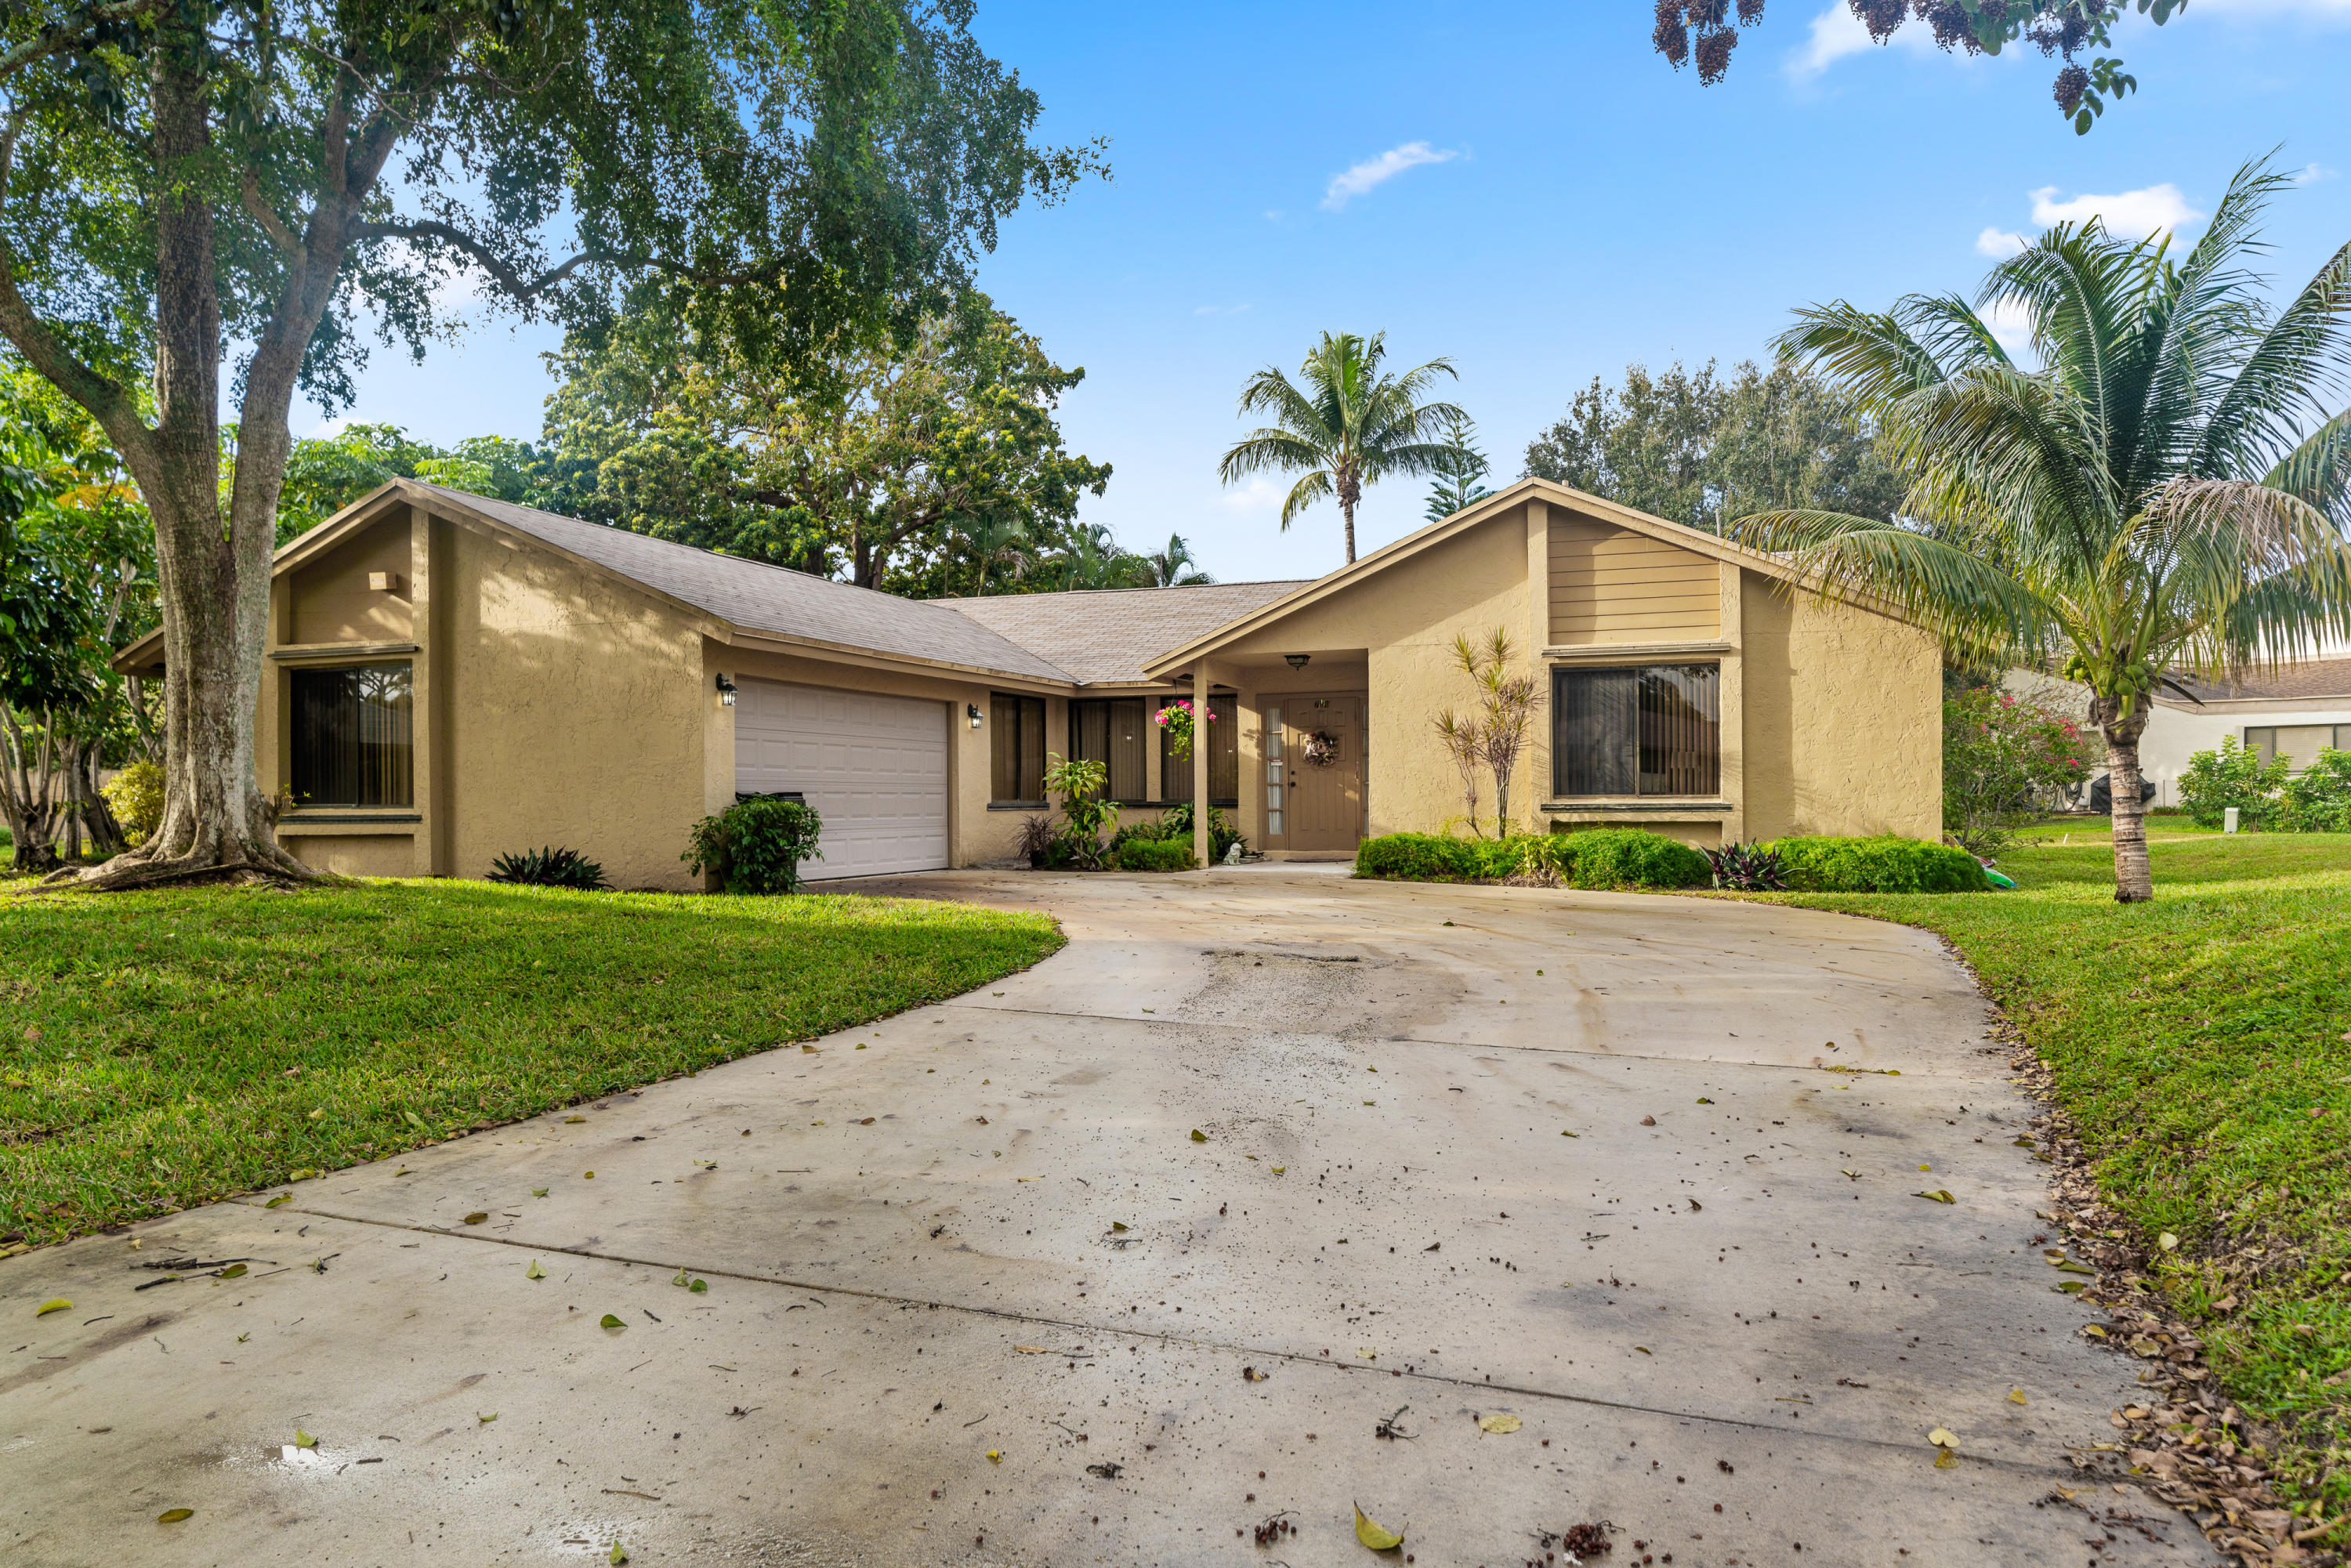 724 NW 24th Avenue  Delray Beach, FL 33445